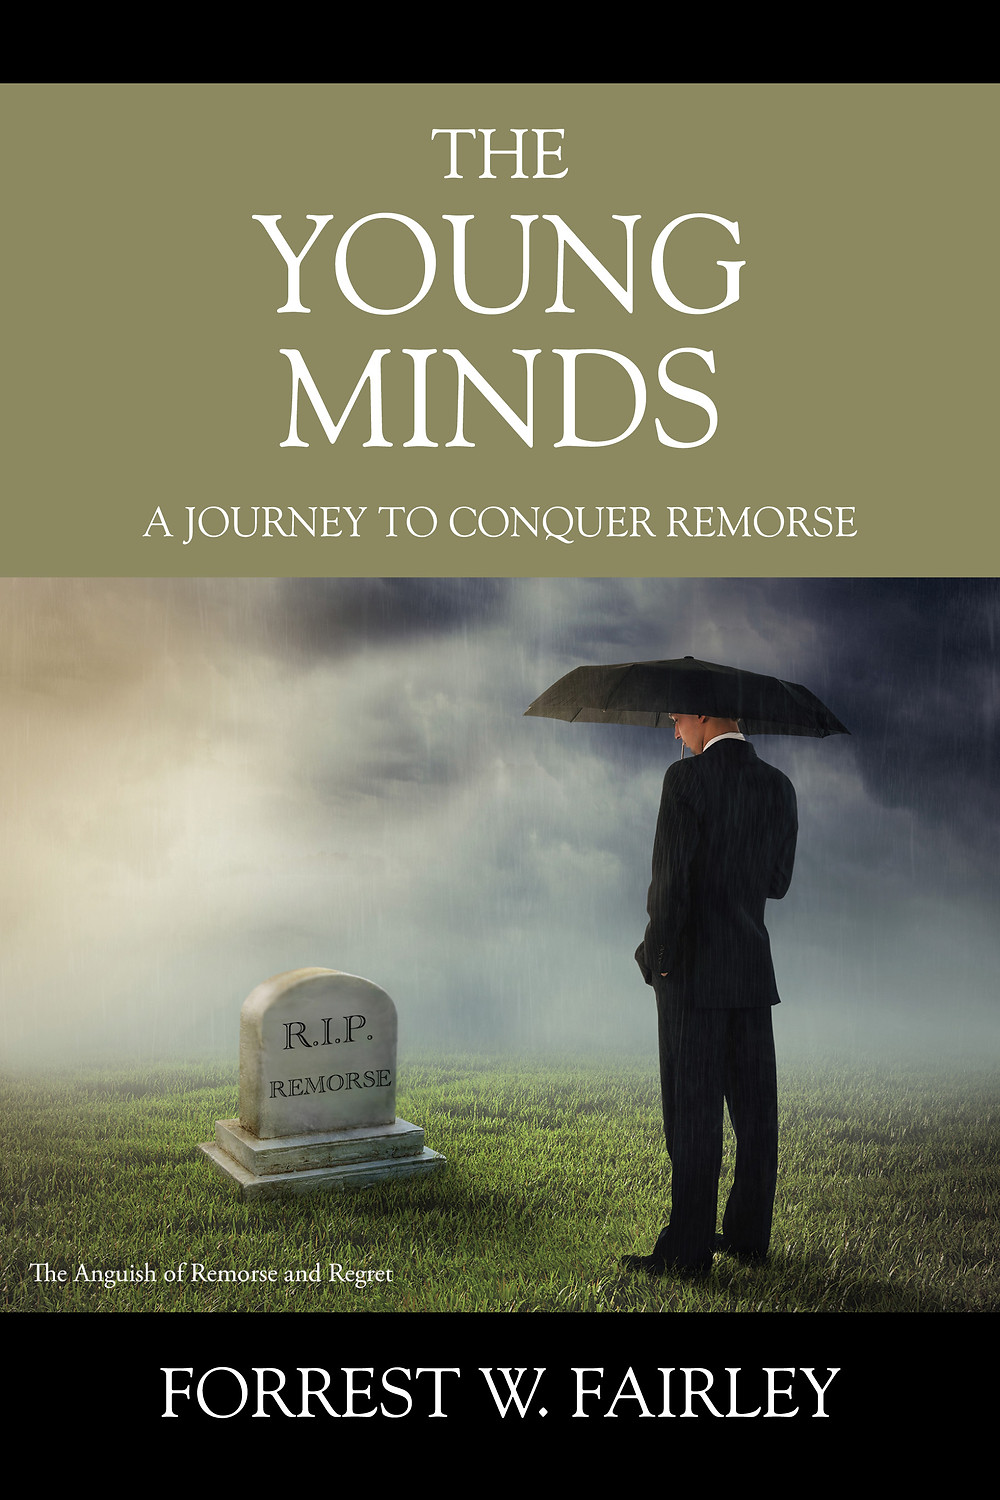 Book, The Young Minds, by Forrest Fairley